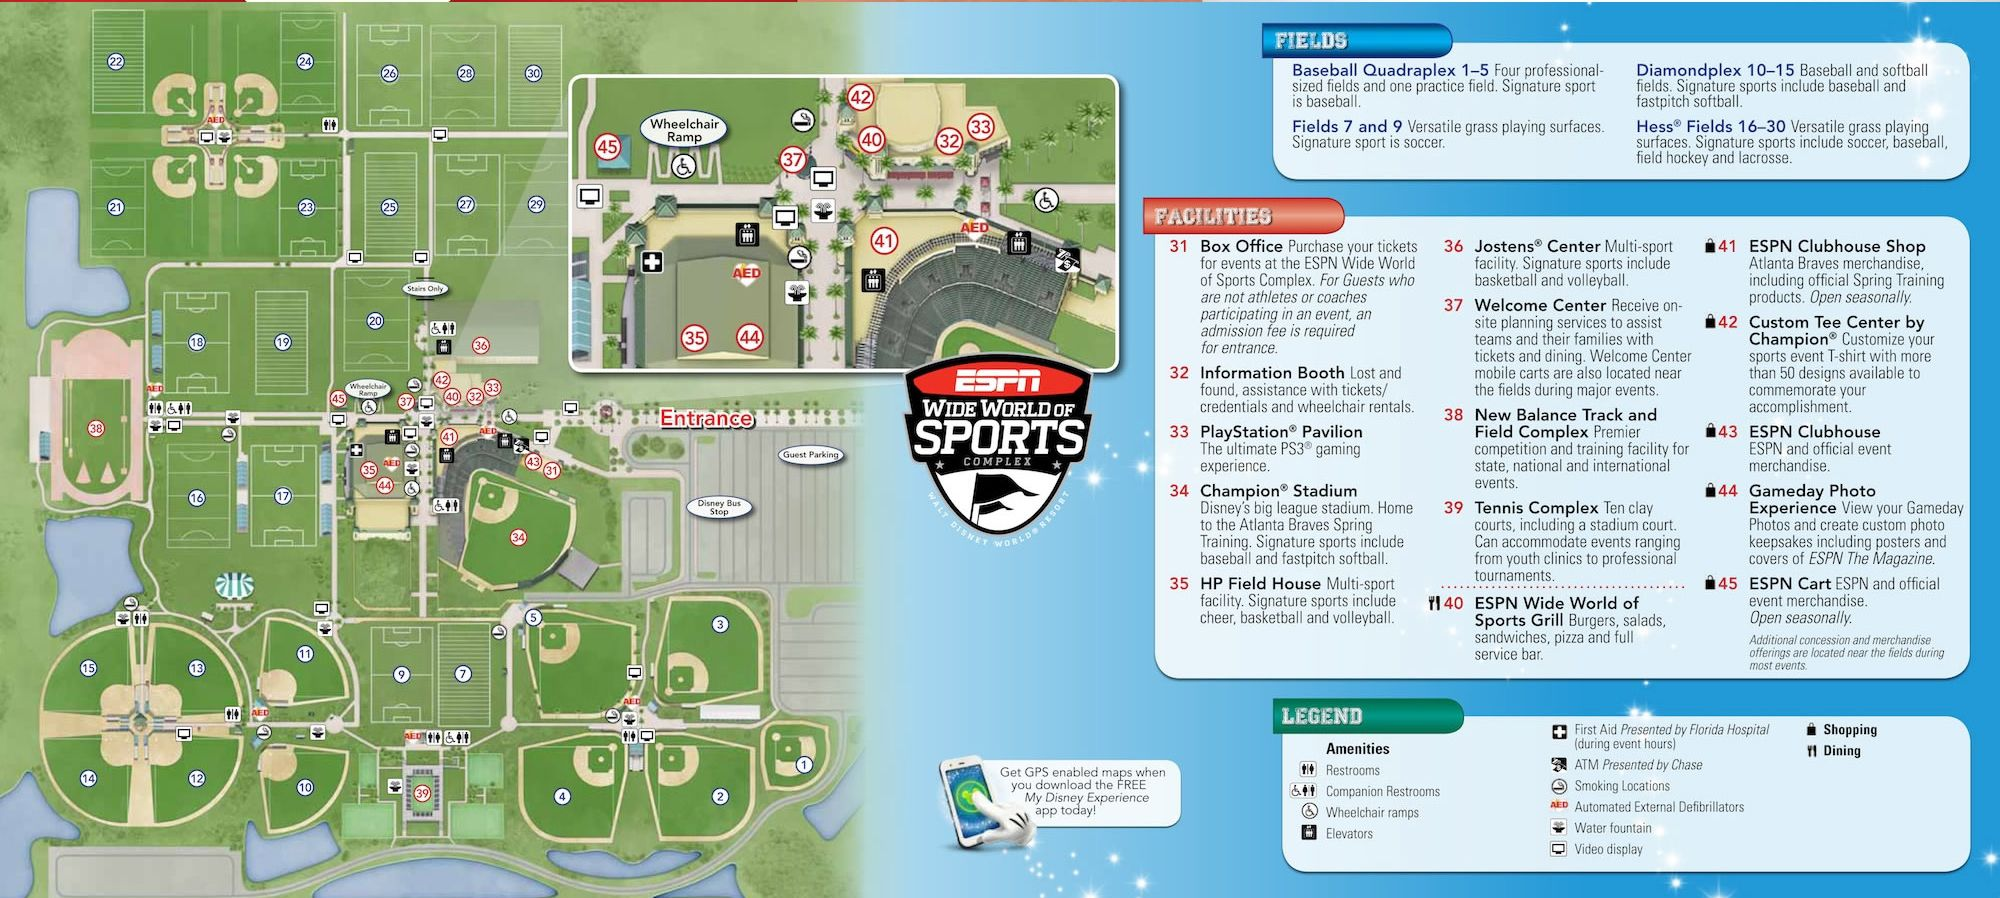 Espn Wide World Of Sports Map Disney World Parks Disney World Map Disney World Tips And Tricks